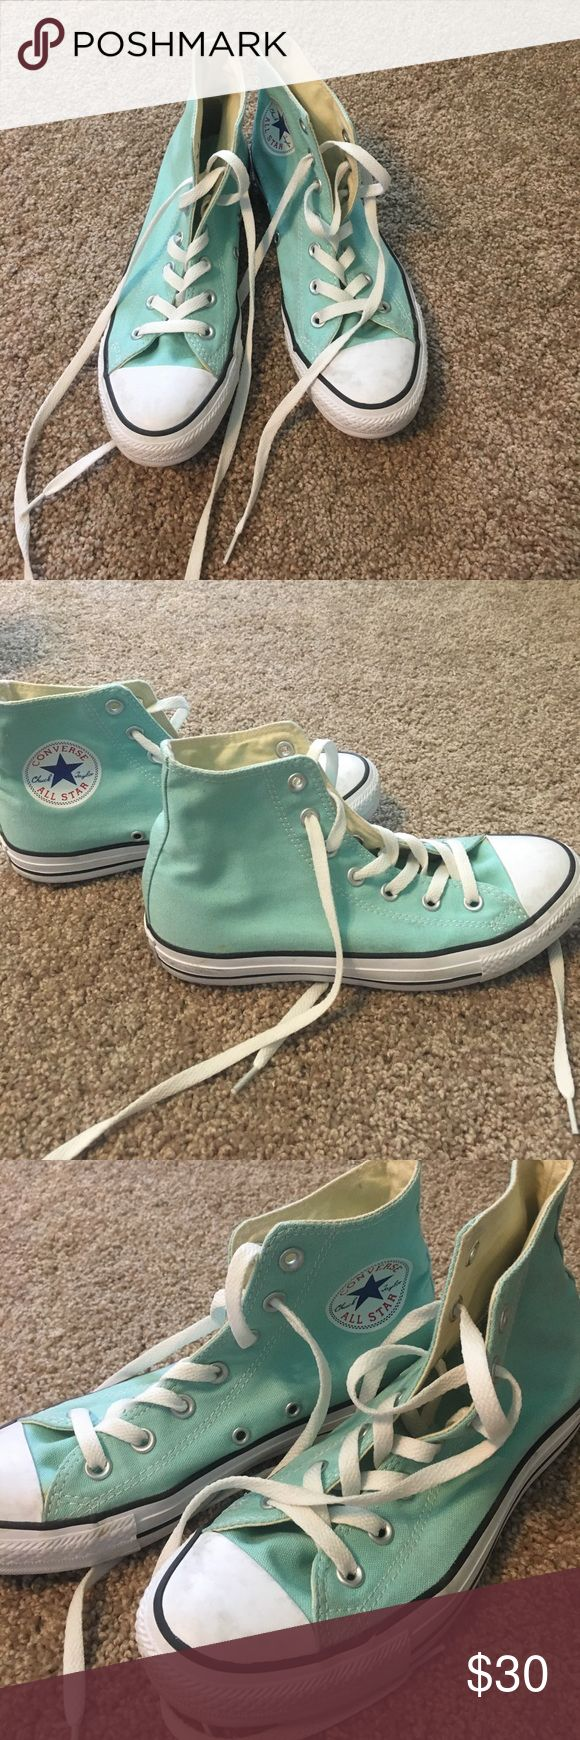 Mint converse mint colored converse all stars hi too, size 8, won't twice Converse Shoes Sneakers